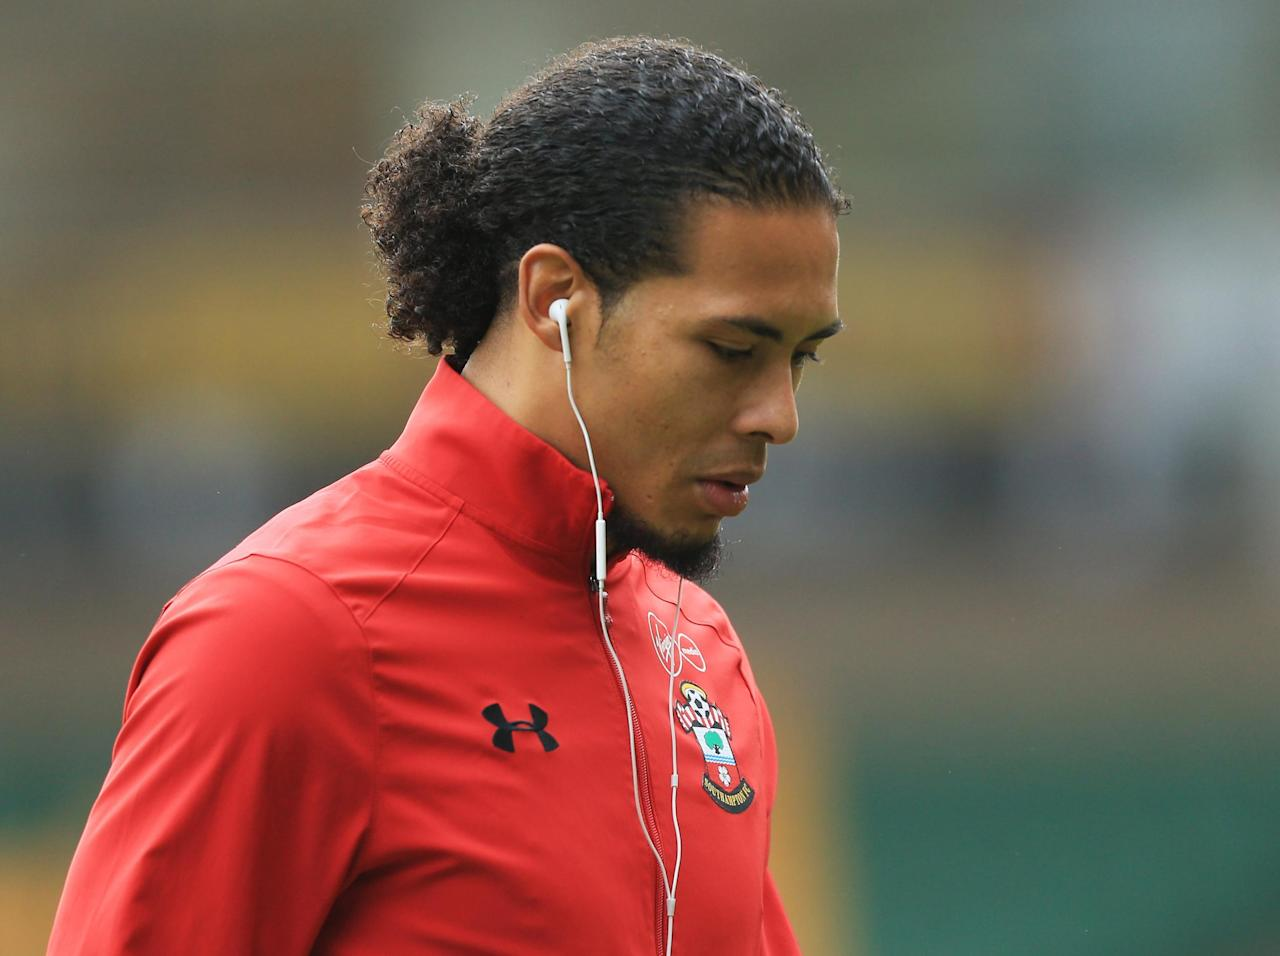 Liverpool transfer target Virgil van Dijk told to respect contract at Southampton